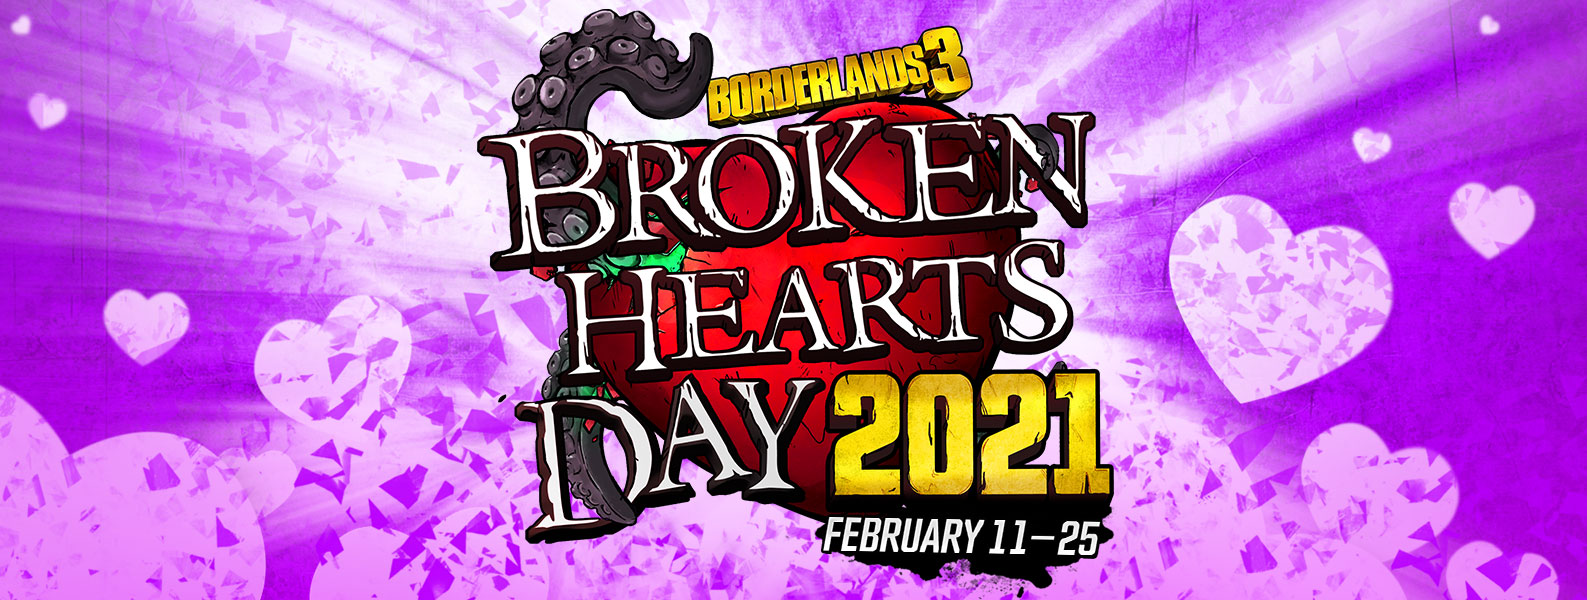 Borderlands 3, Broken Hearts Day 2021, February 11th through February 25th, A red heart with tentacles against an exploding purple background.